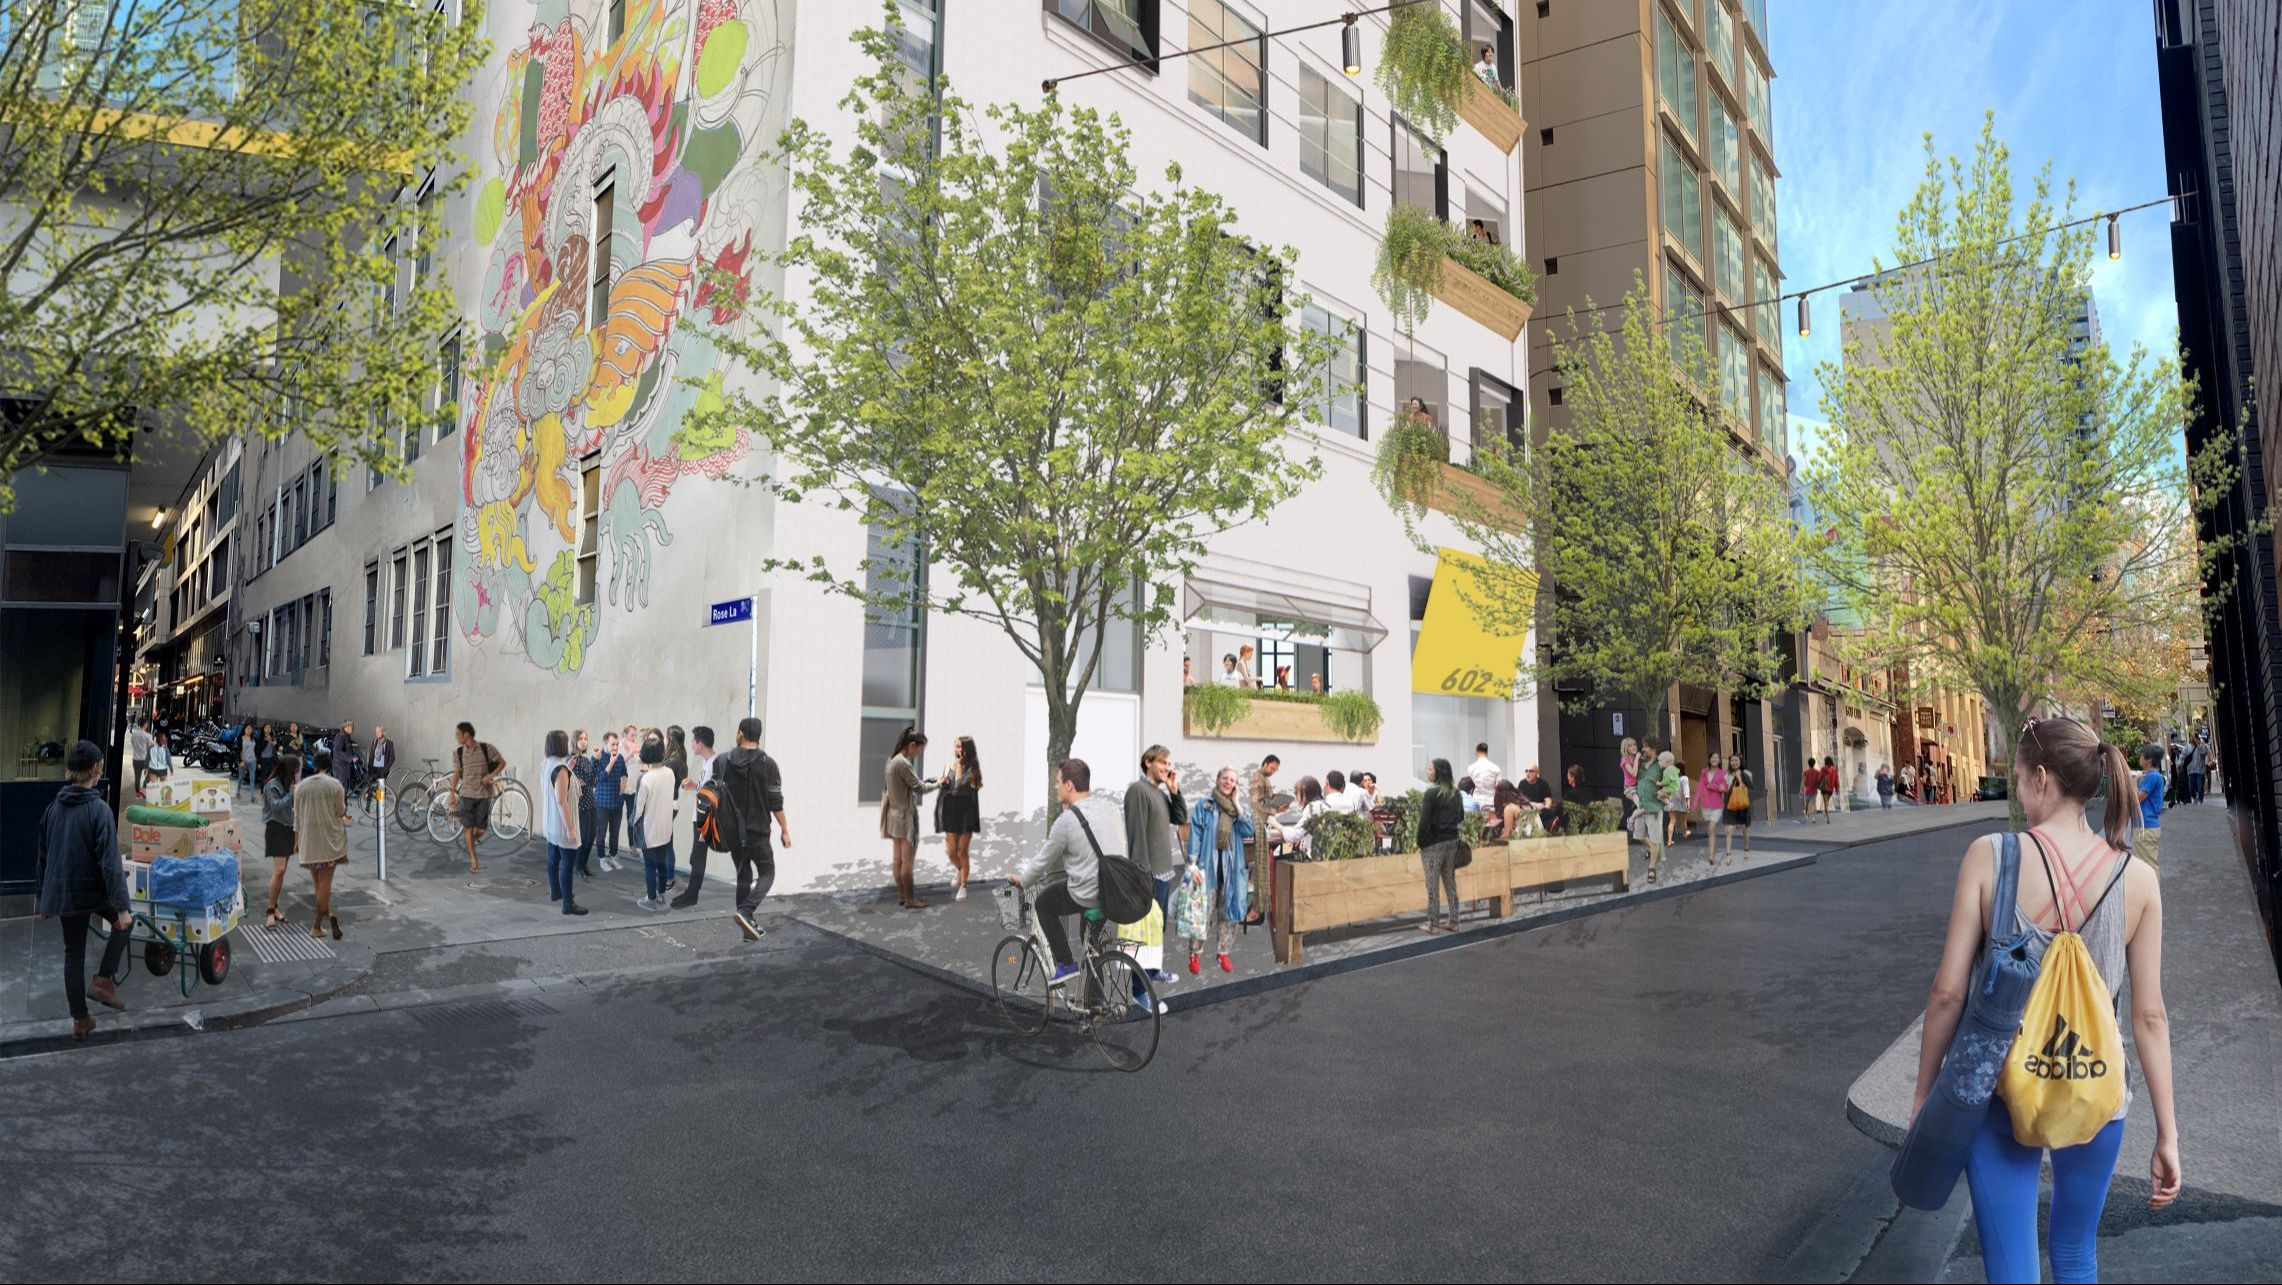 Artistic impression of 602 Bourke Street after the Make Room redevelopment